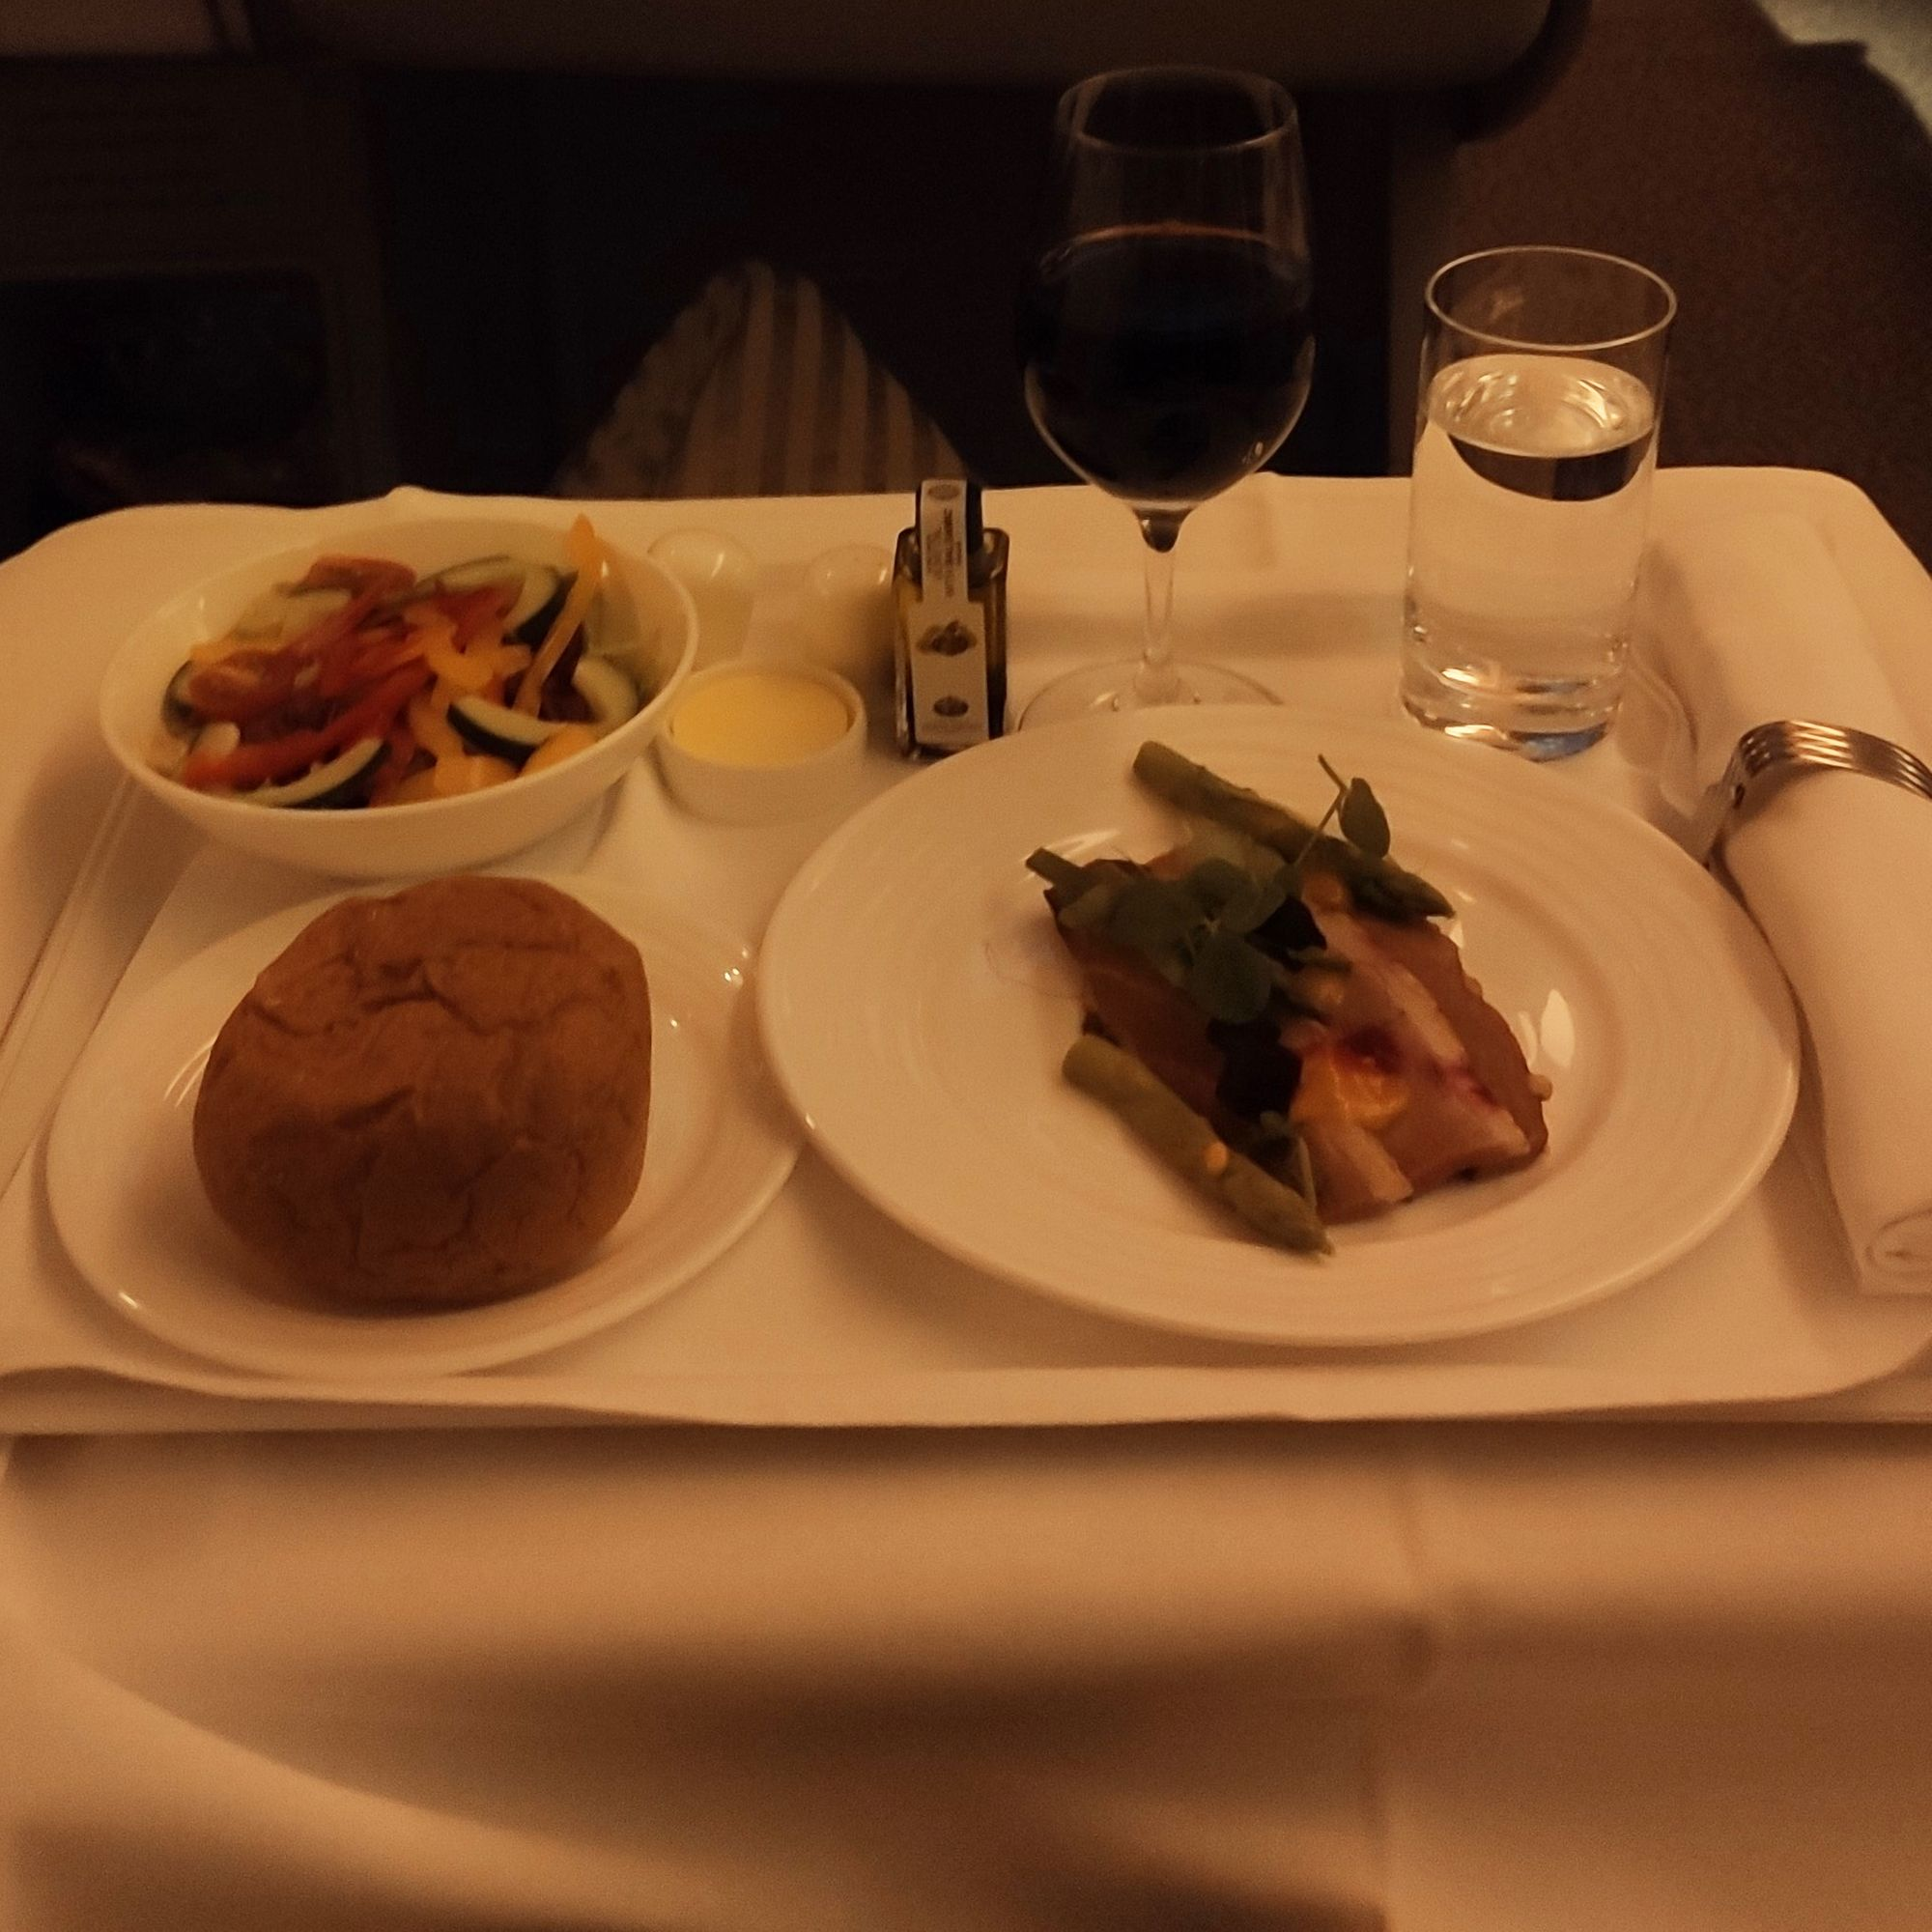 Image of food server during the flight with proper ceramic plates and good cutlery